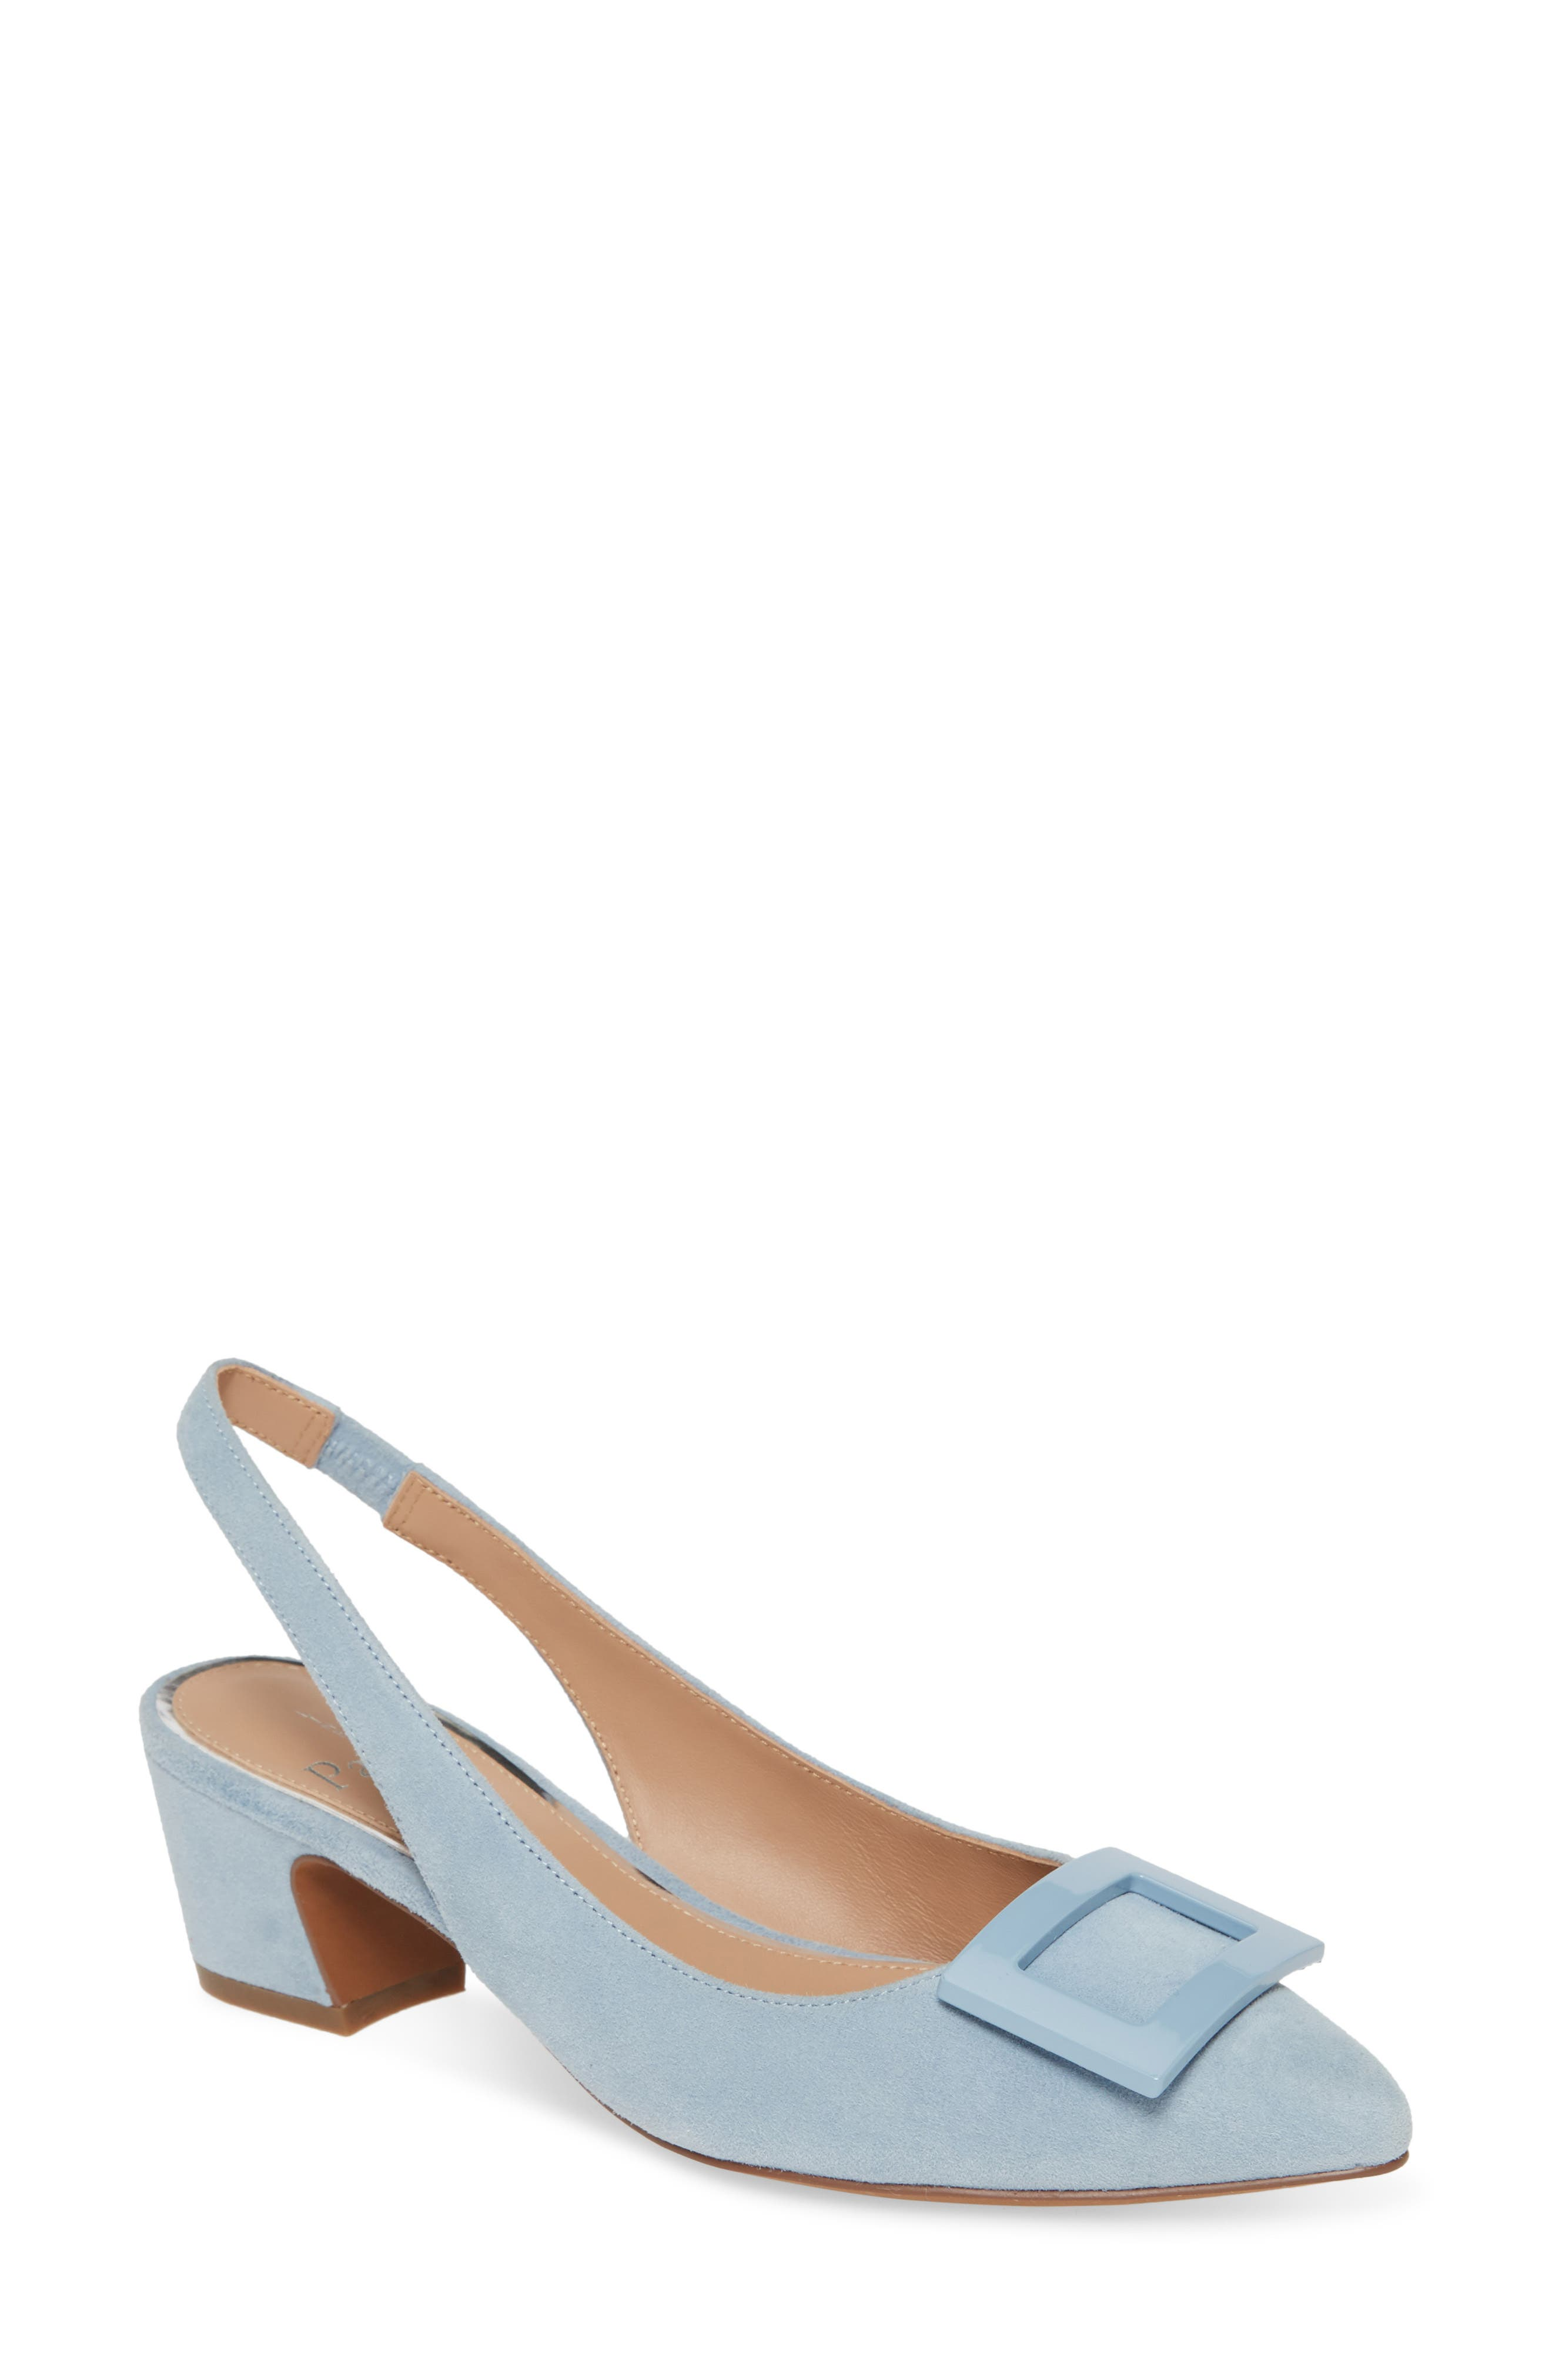 A glossy, curved buckle tops the pointy toe of a slingback pump lifted by a slanted block heel. Style Name: Linea Paolo Baize Buckle Pointed Toe Slingback Pump (Women). Style Number: 5941463. Available in stores.